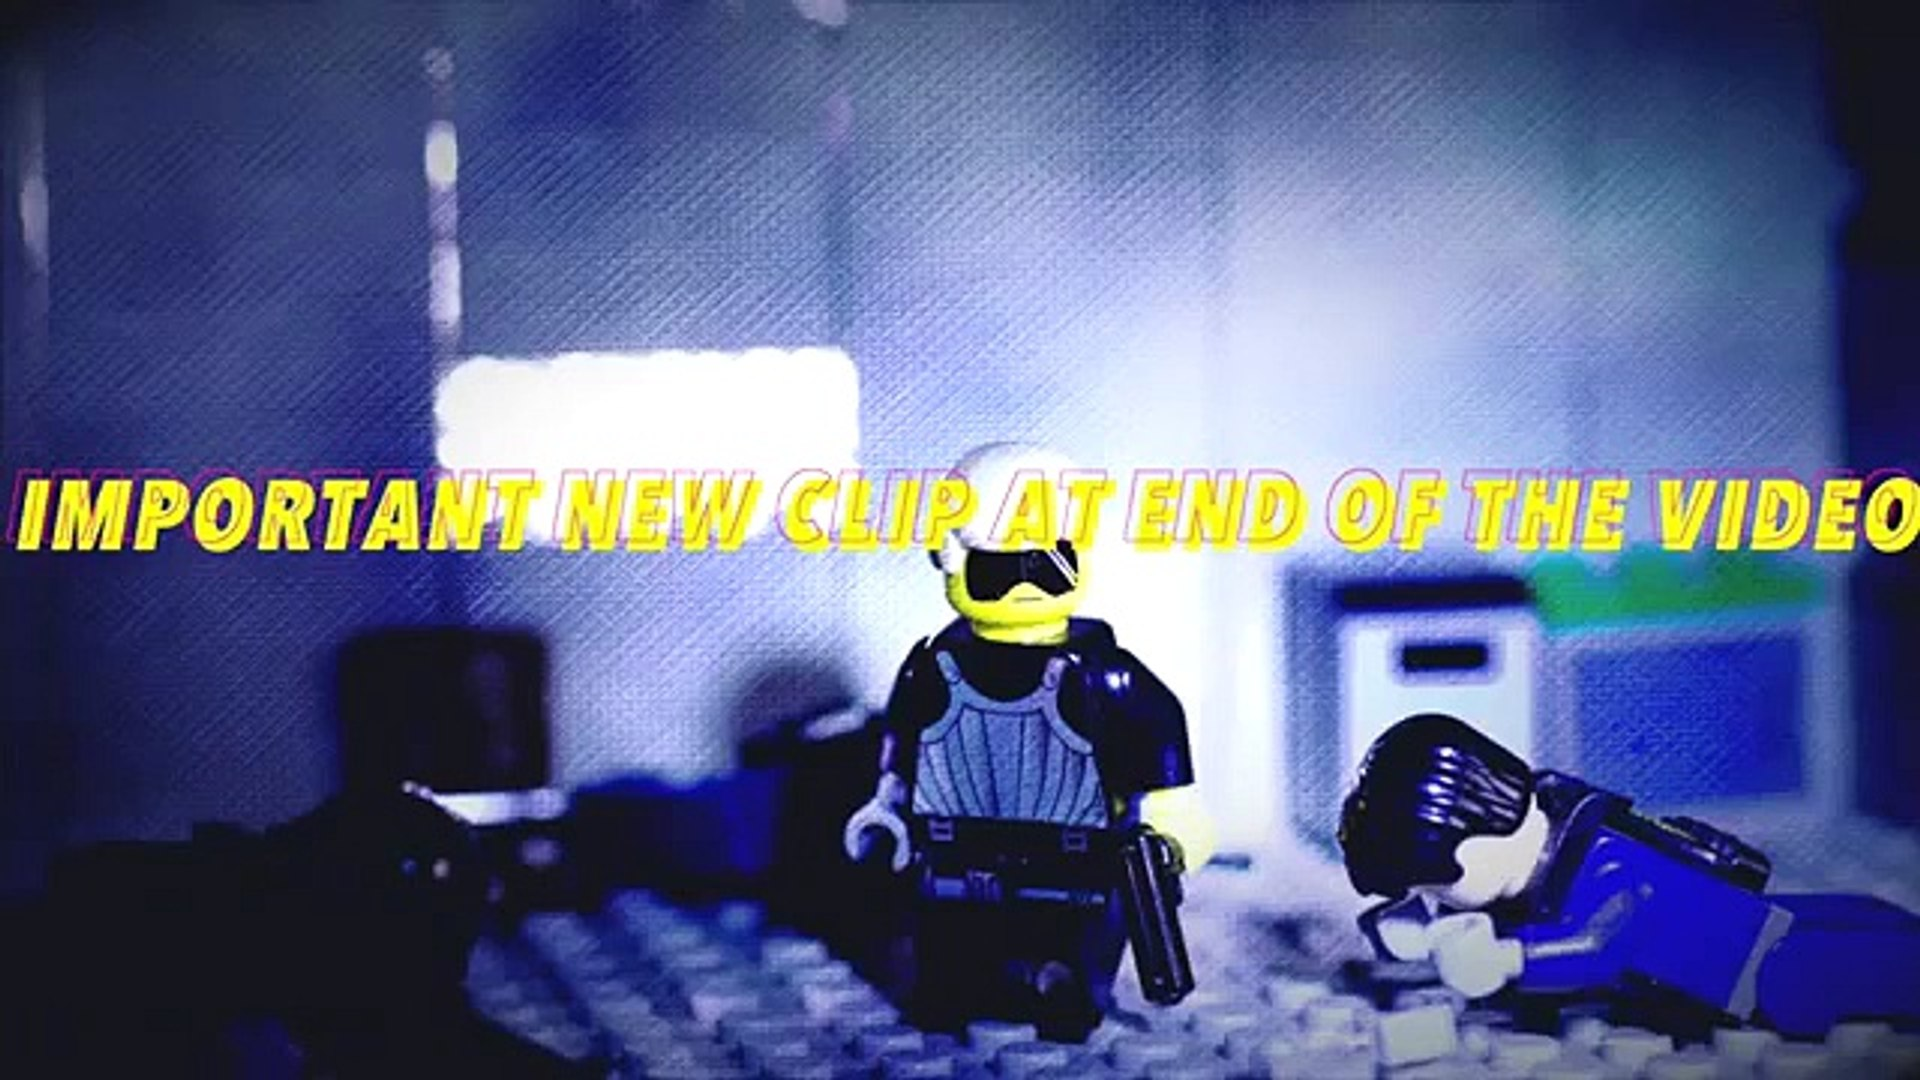 LEGO GAMER SHORT STOP MOTION ANIMATED ACTION FILM mov